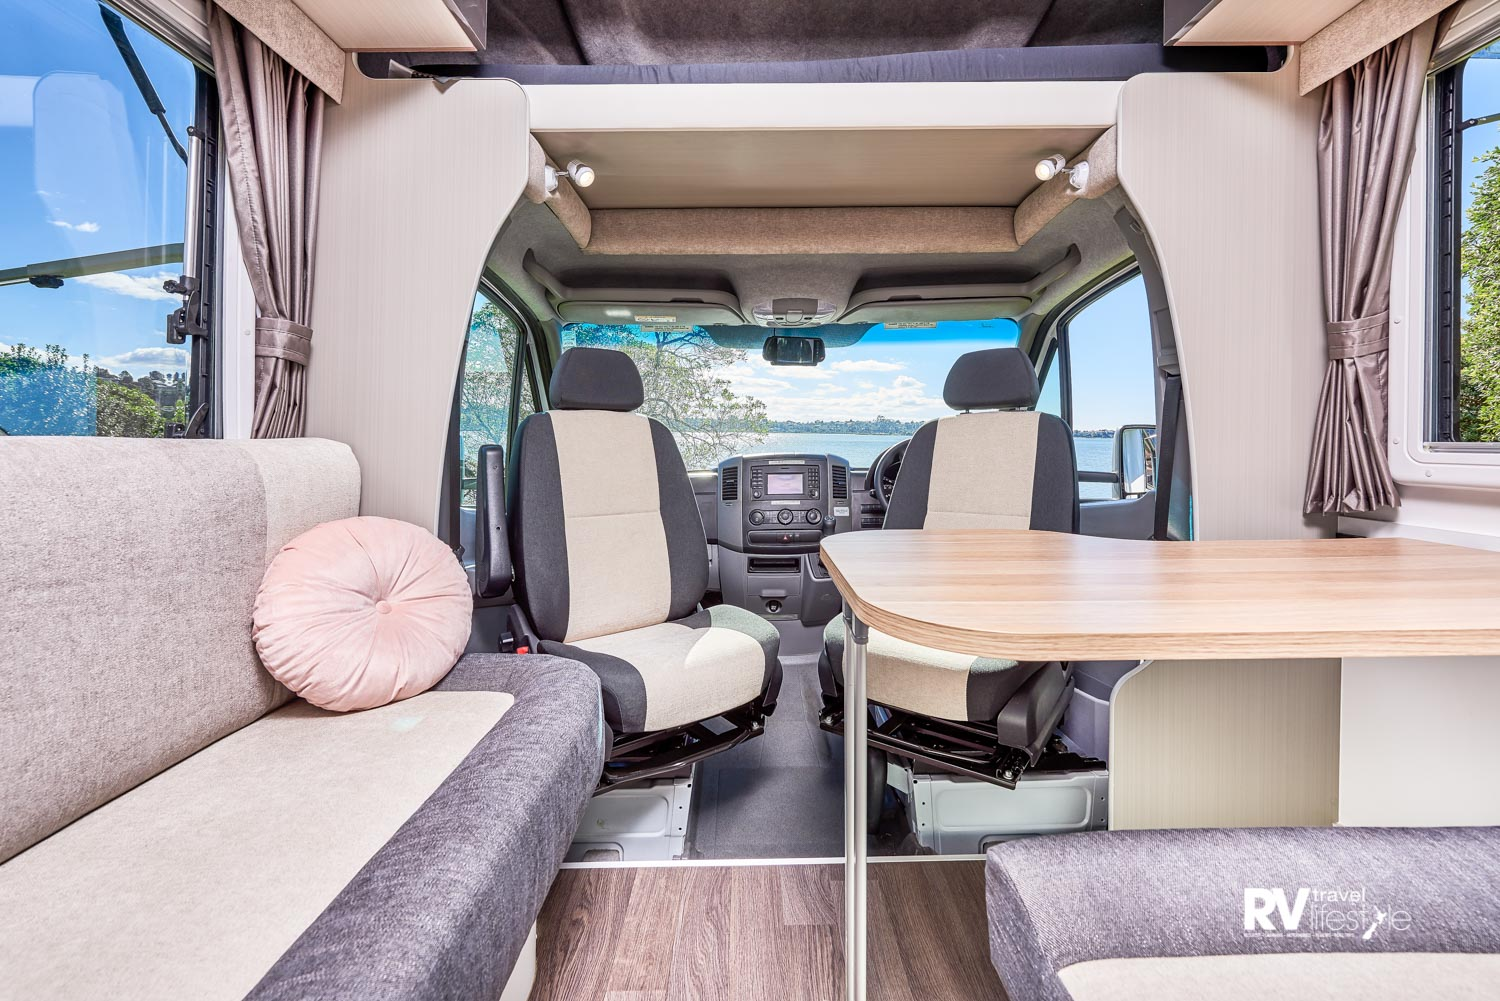 Work-life? The Olantas 531 would make a great office on the road